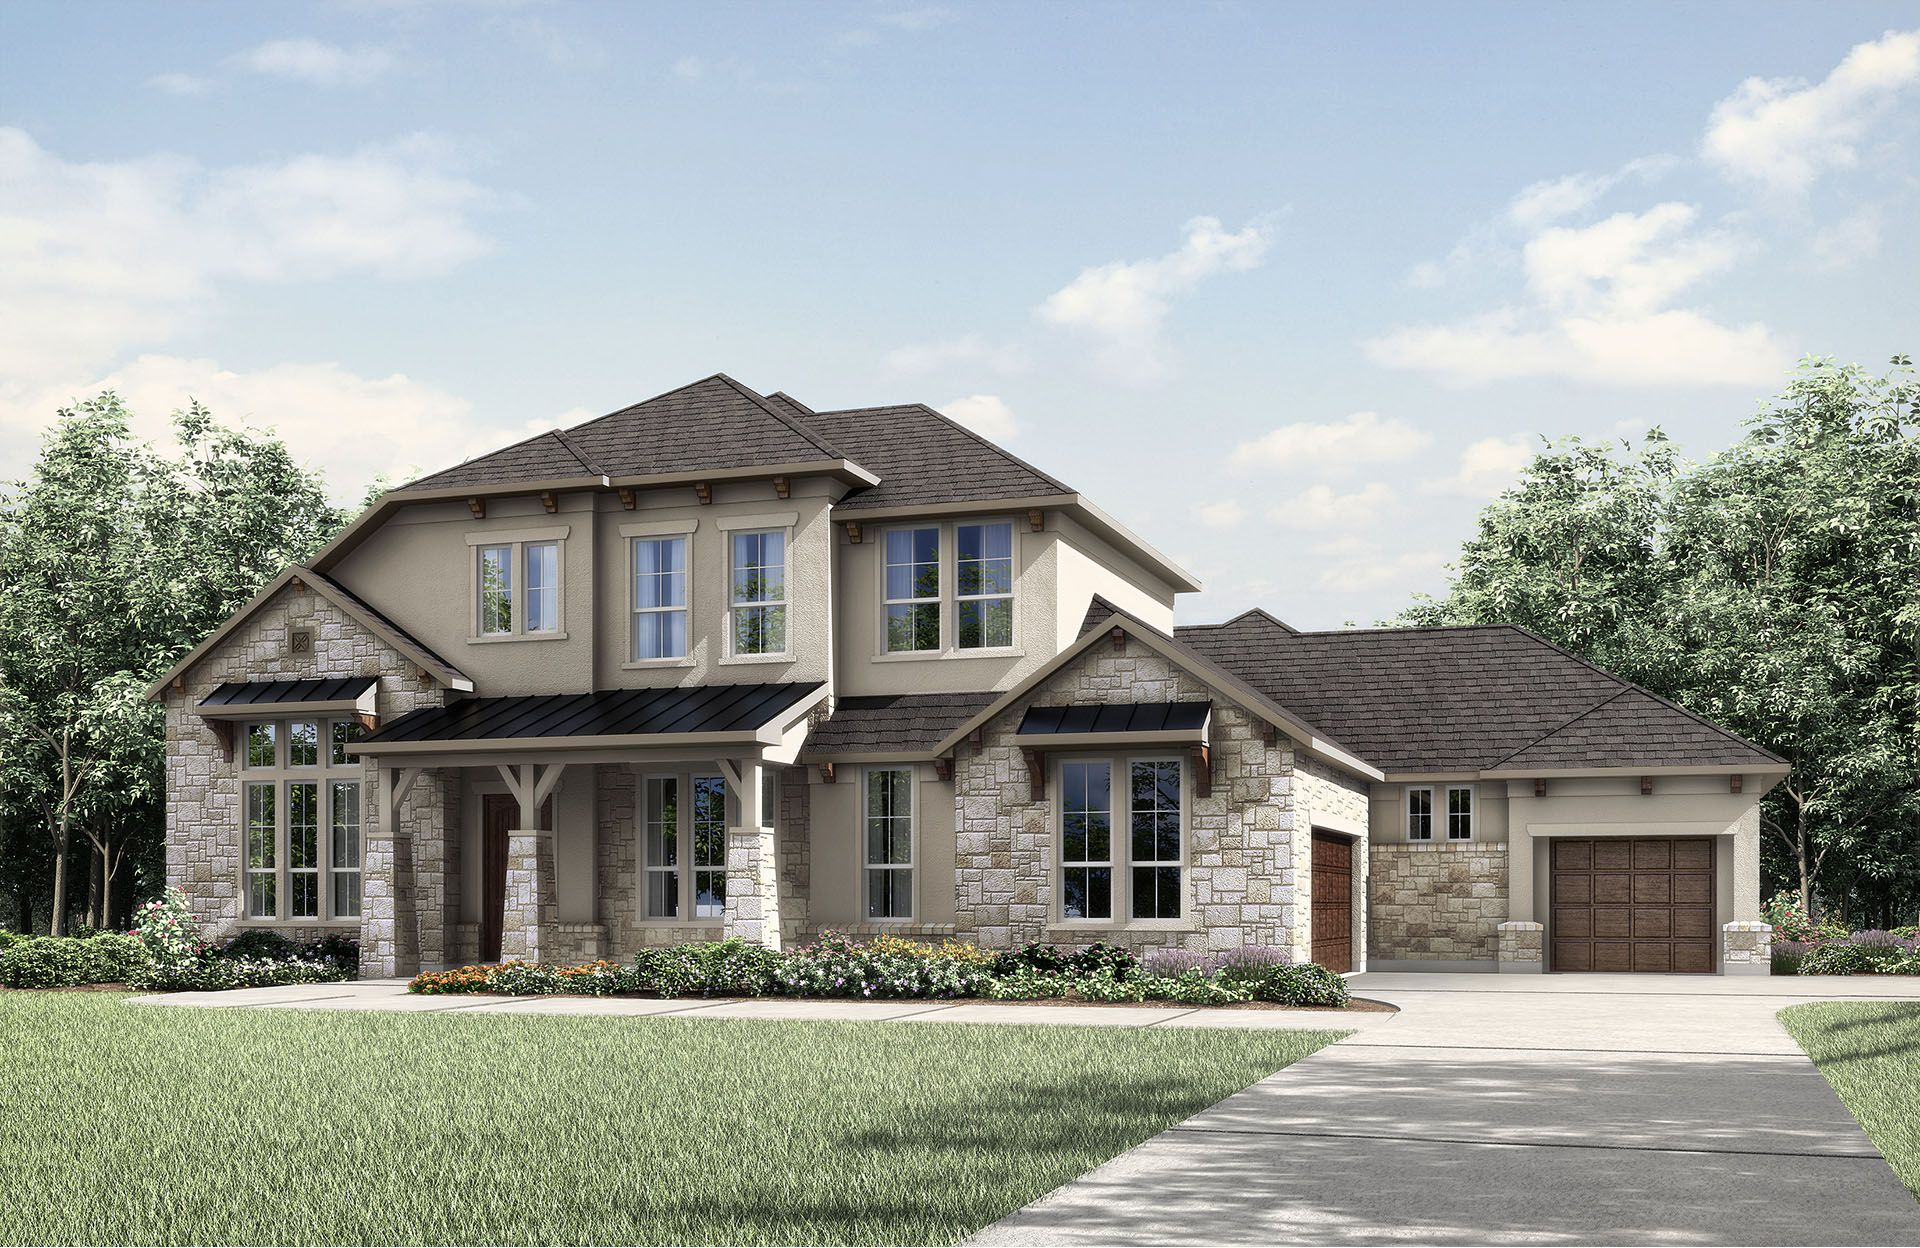 Single Family for Sale at Colinas Ii 416 Brave Face Street Leander, Texas 78641 United States